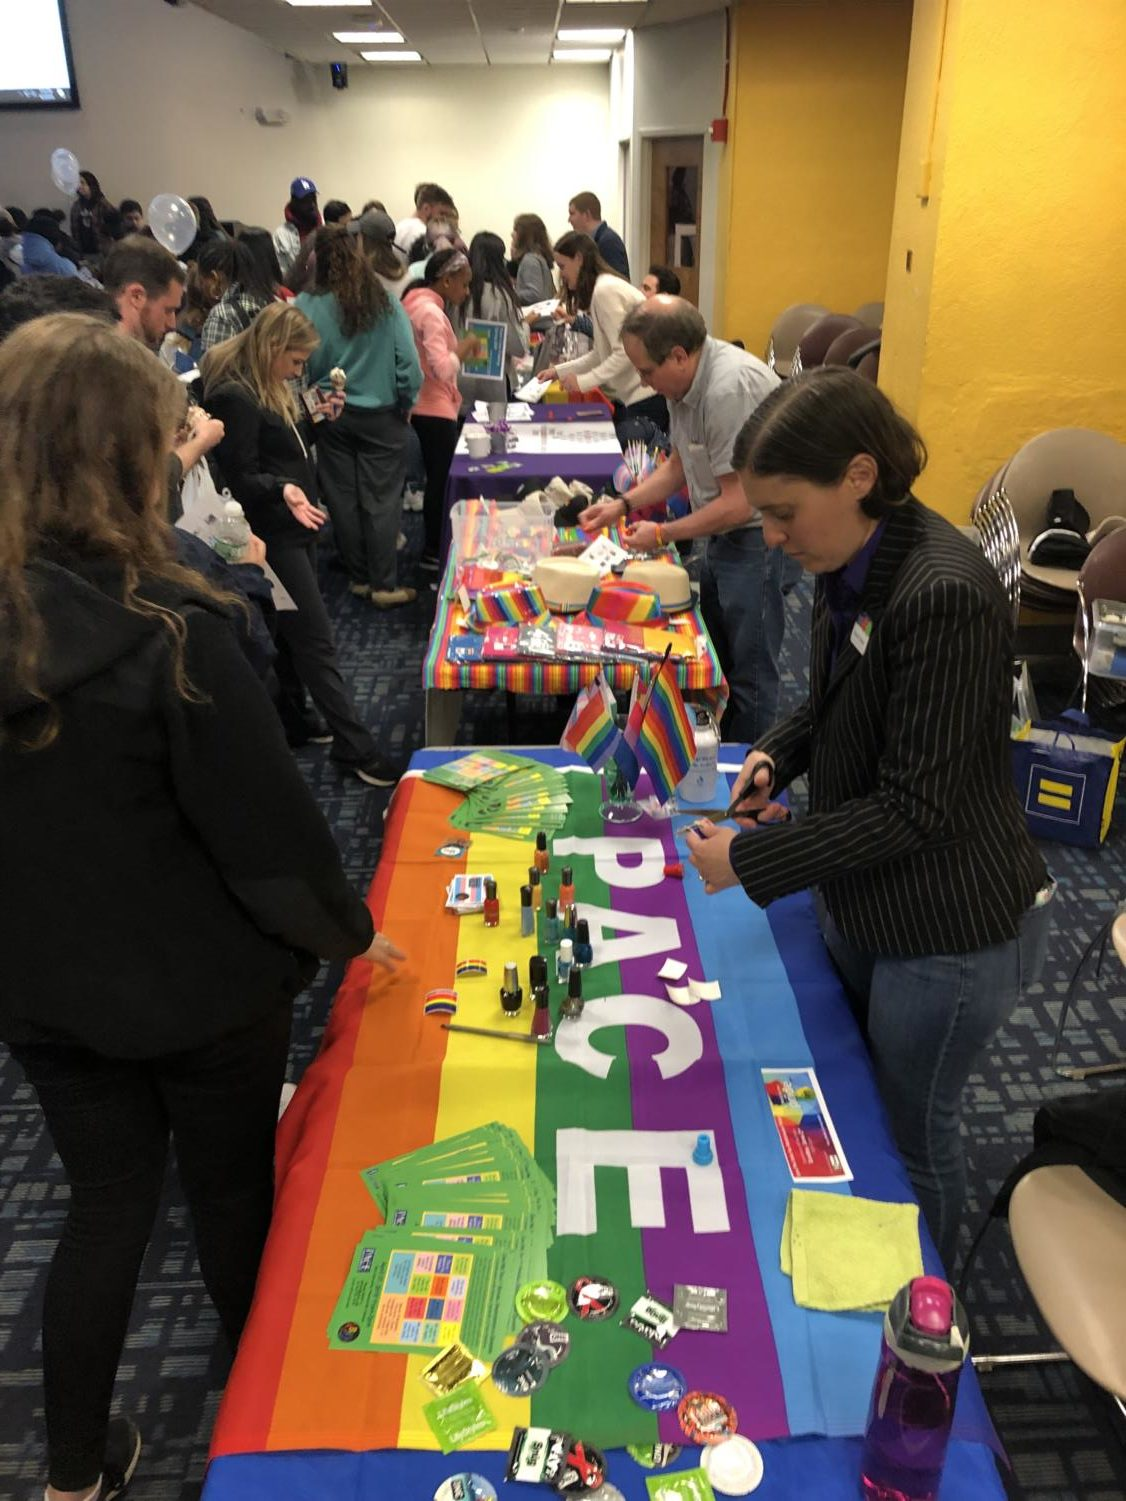 Sex toys were given away, and sex education was delivered during last week's Sexology event.